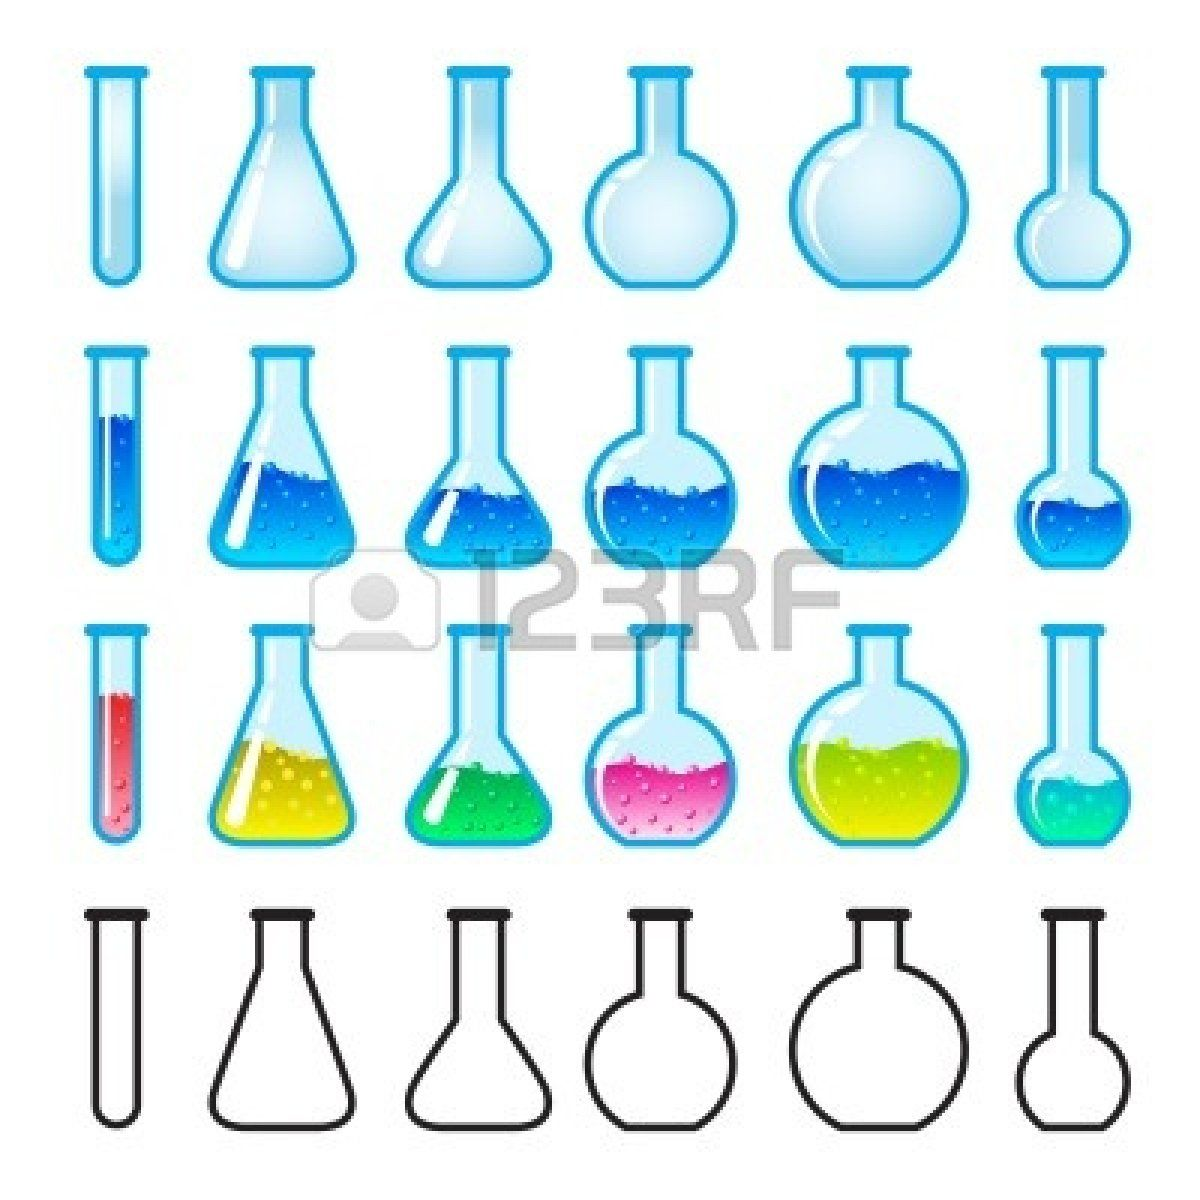 Science Lab Safety Clipart | Clipart Panda - Free Clipart Images